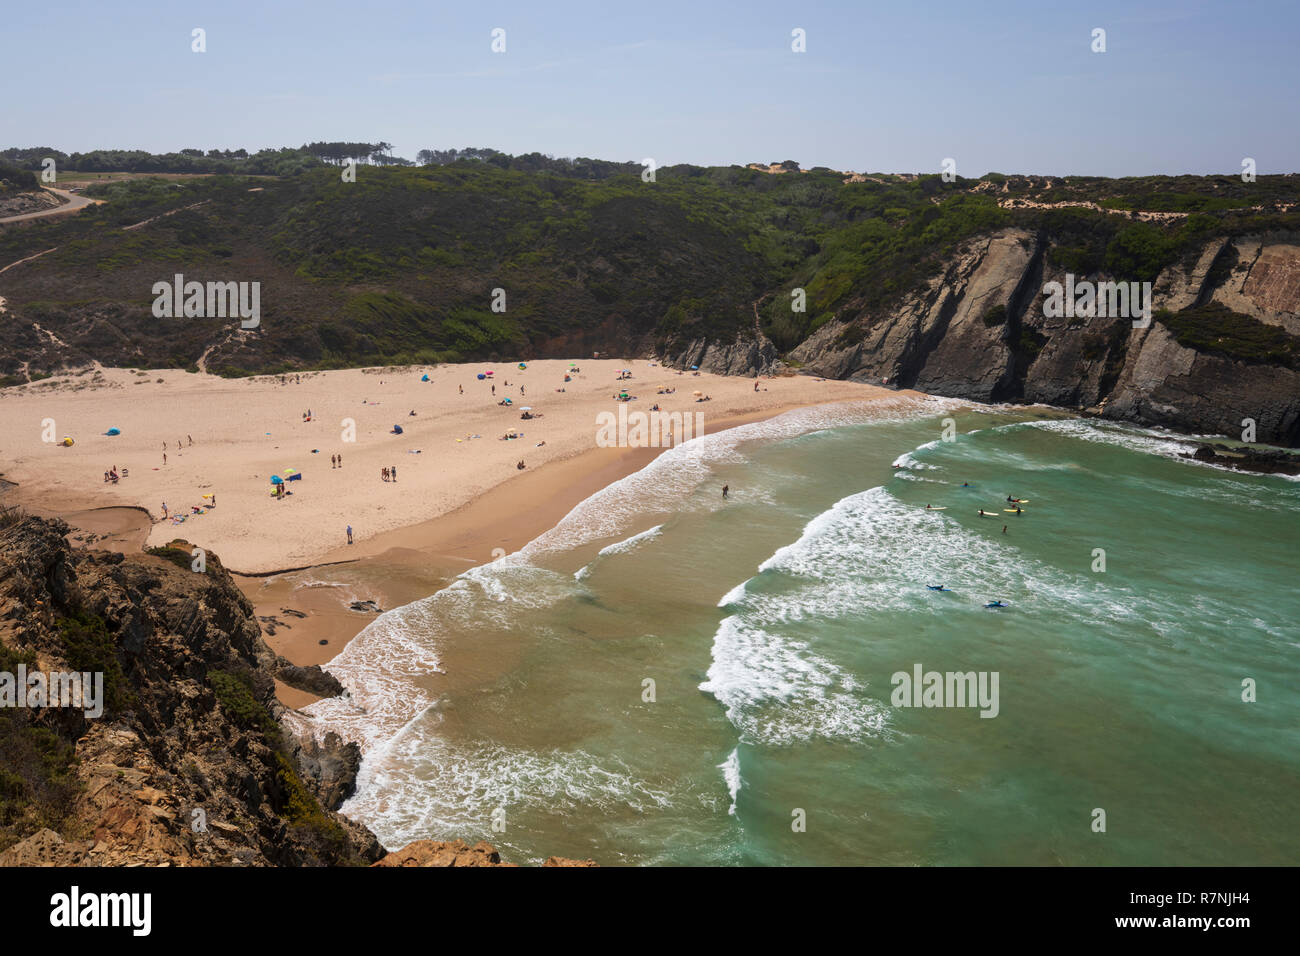 Praia do Carvalhal with breaking Atlantic waves in the afternoon sun, Zambujeira do Mar, Alentejo region, Portugal, Europe - Stock Image